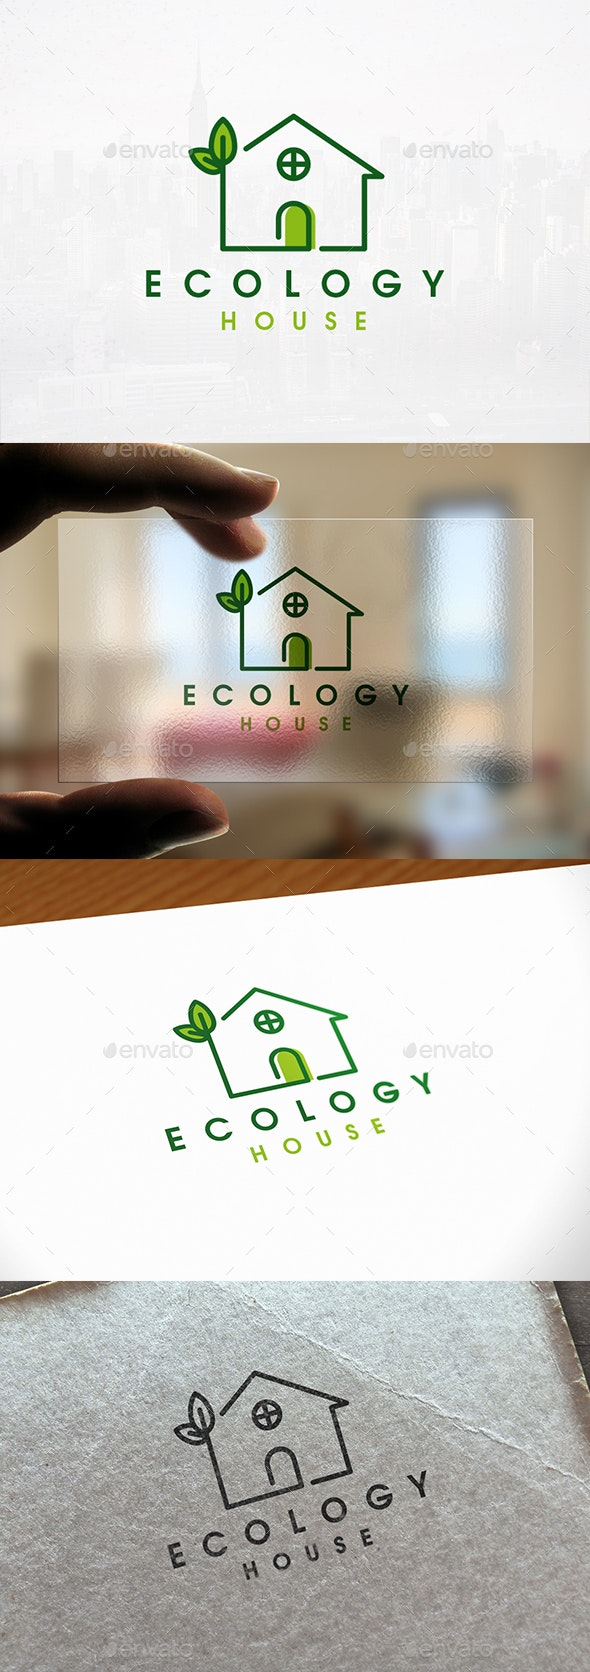 Ecology House Logo Template - Nature Logo Templates